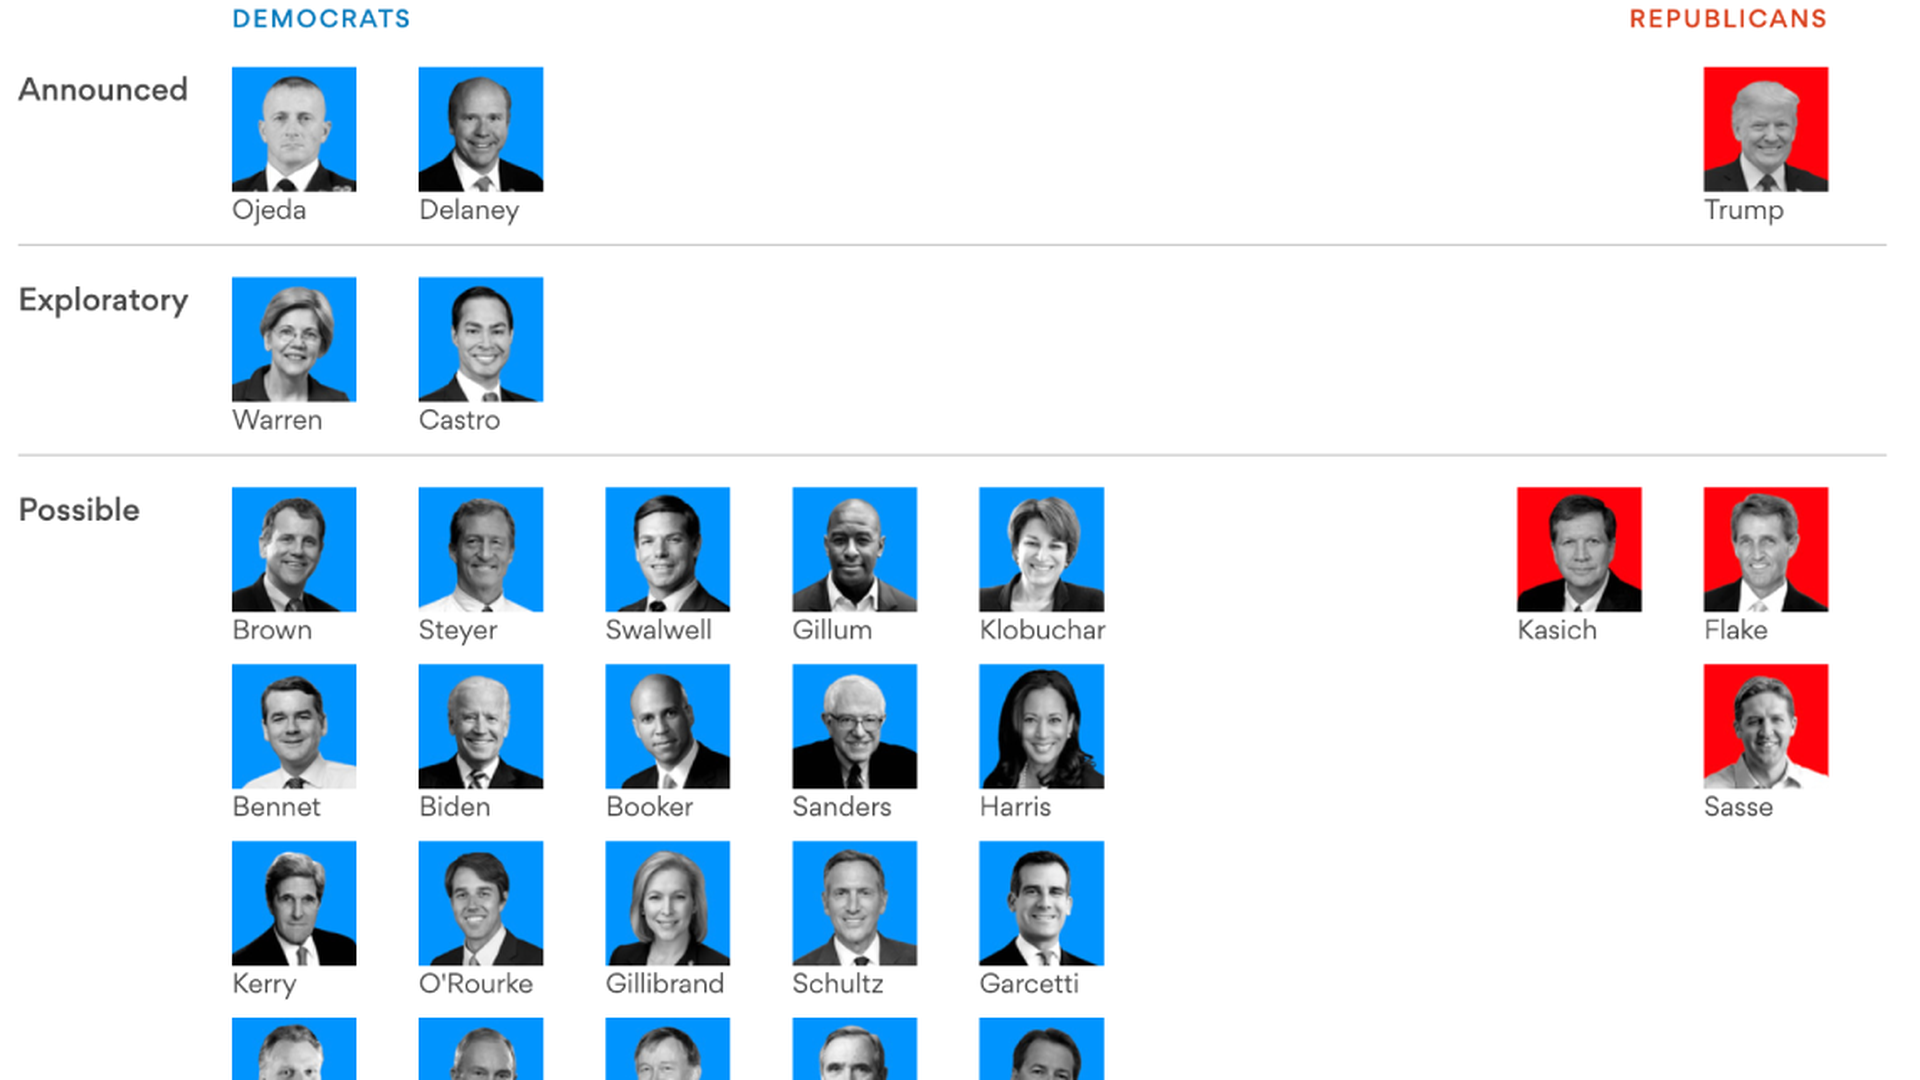 2020 presidential election: Track which candidates are running - Axios